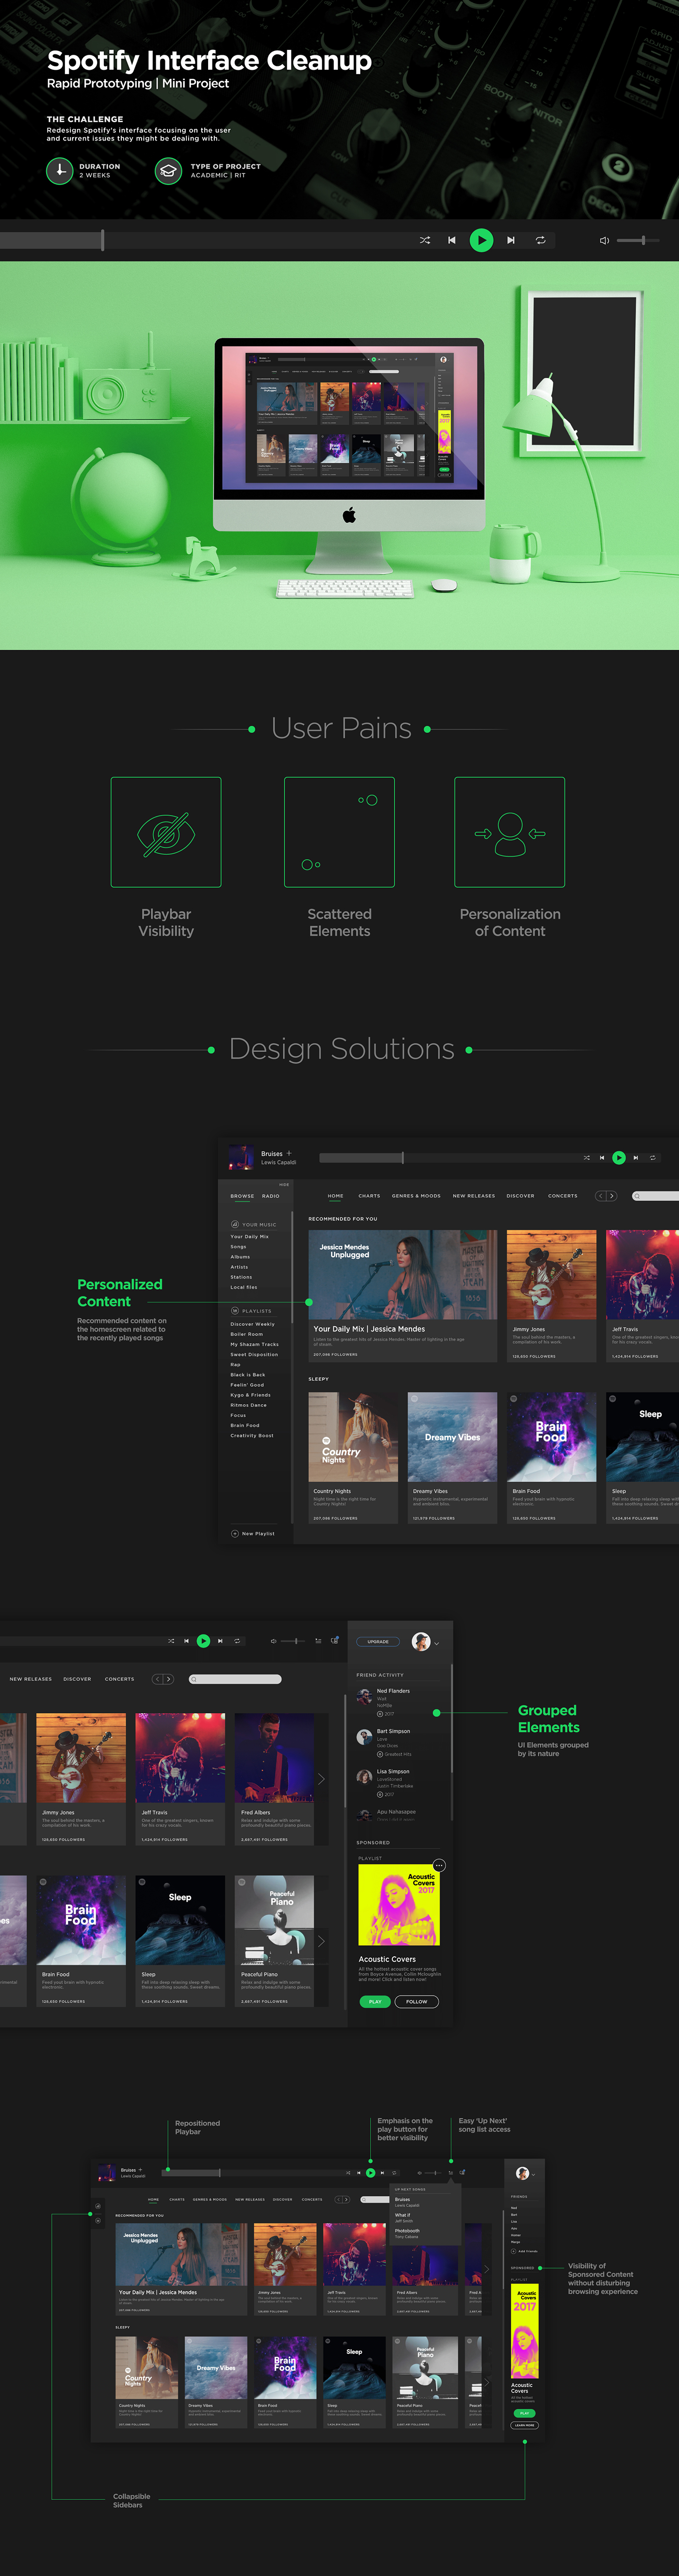 Spotify Interface Cleanup | Mini Project on Behance